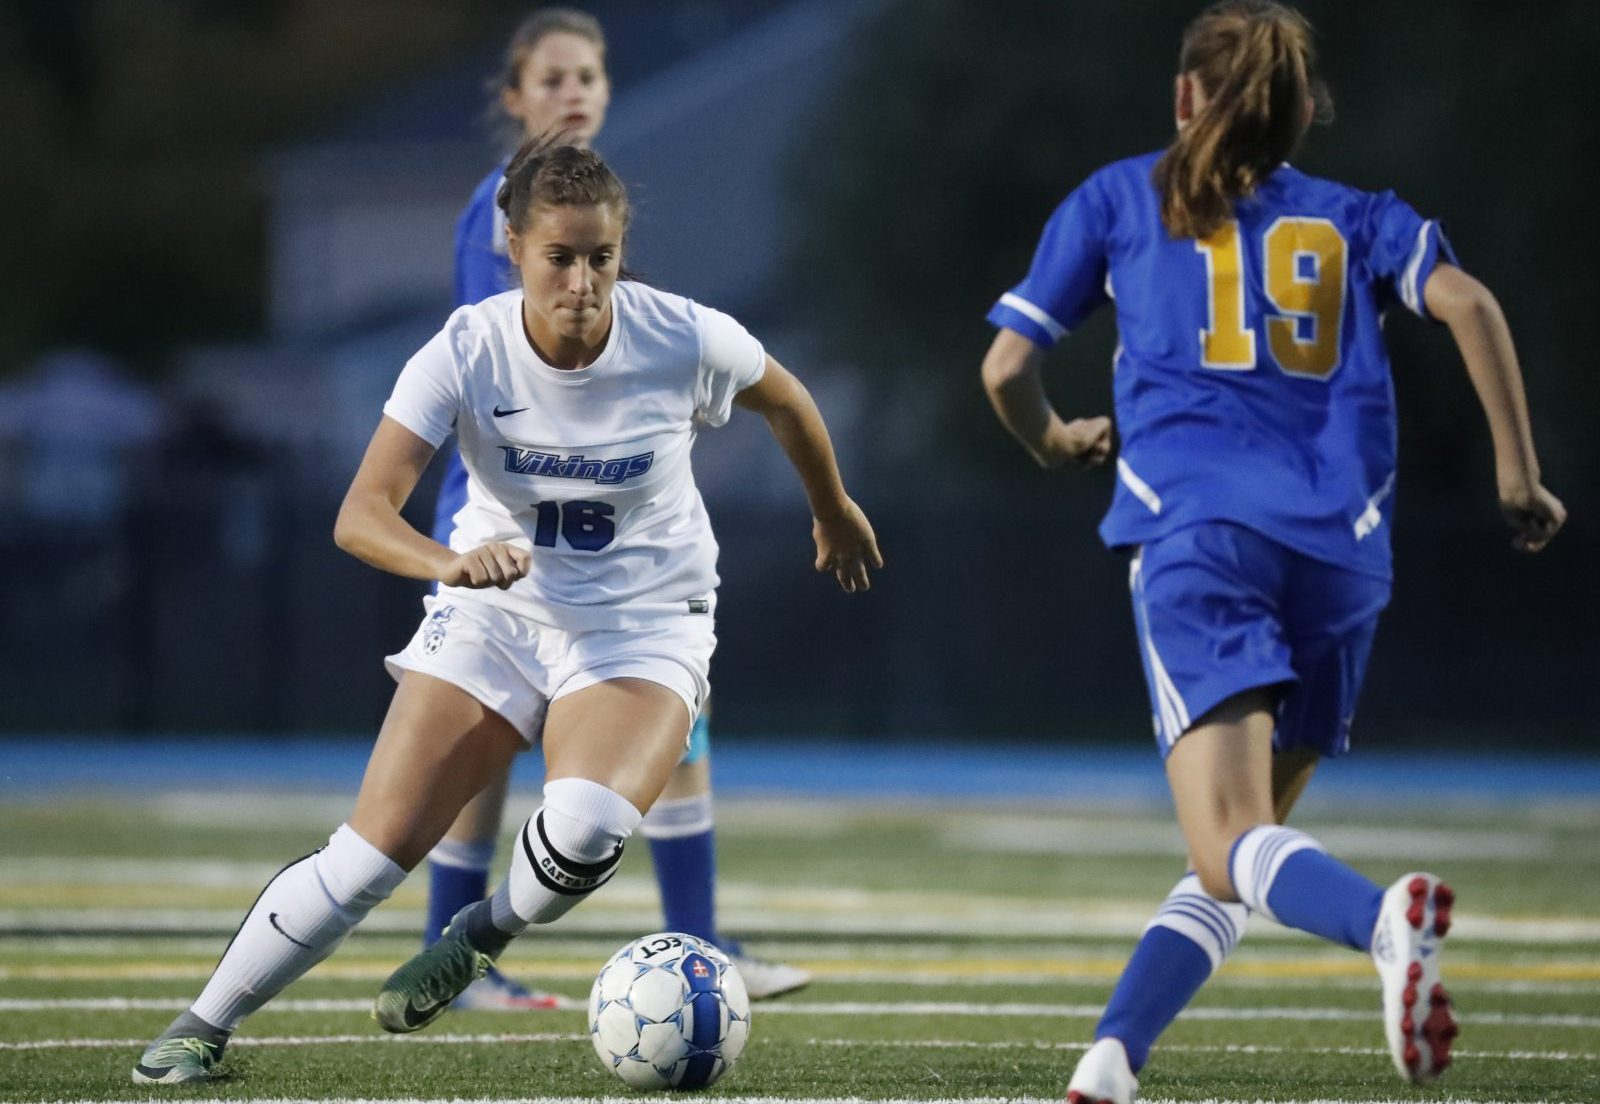 Grand Island's Madisyn Pezzino scored 73 goals this season and 251 for her career. (Harry Scull Jr./Buffalo News)